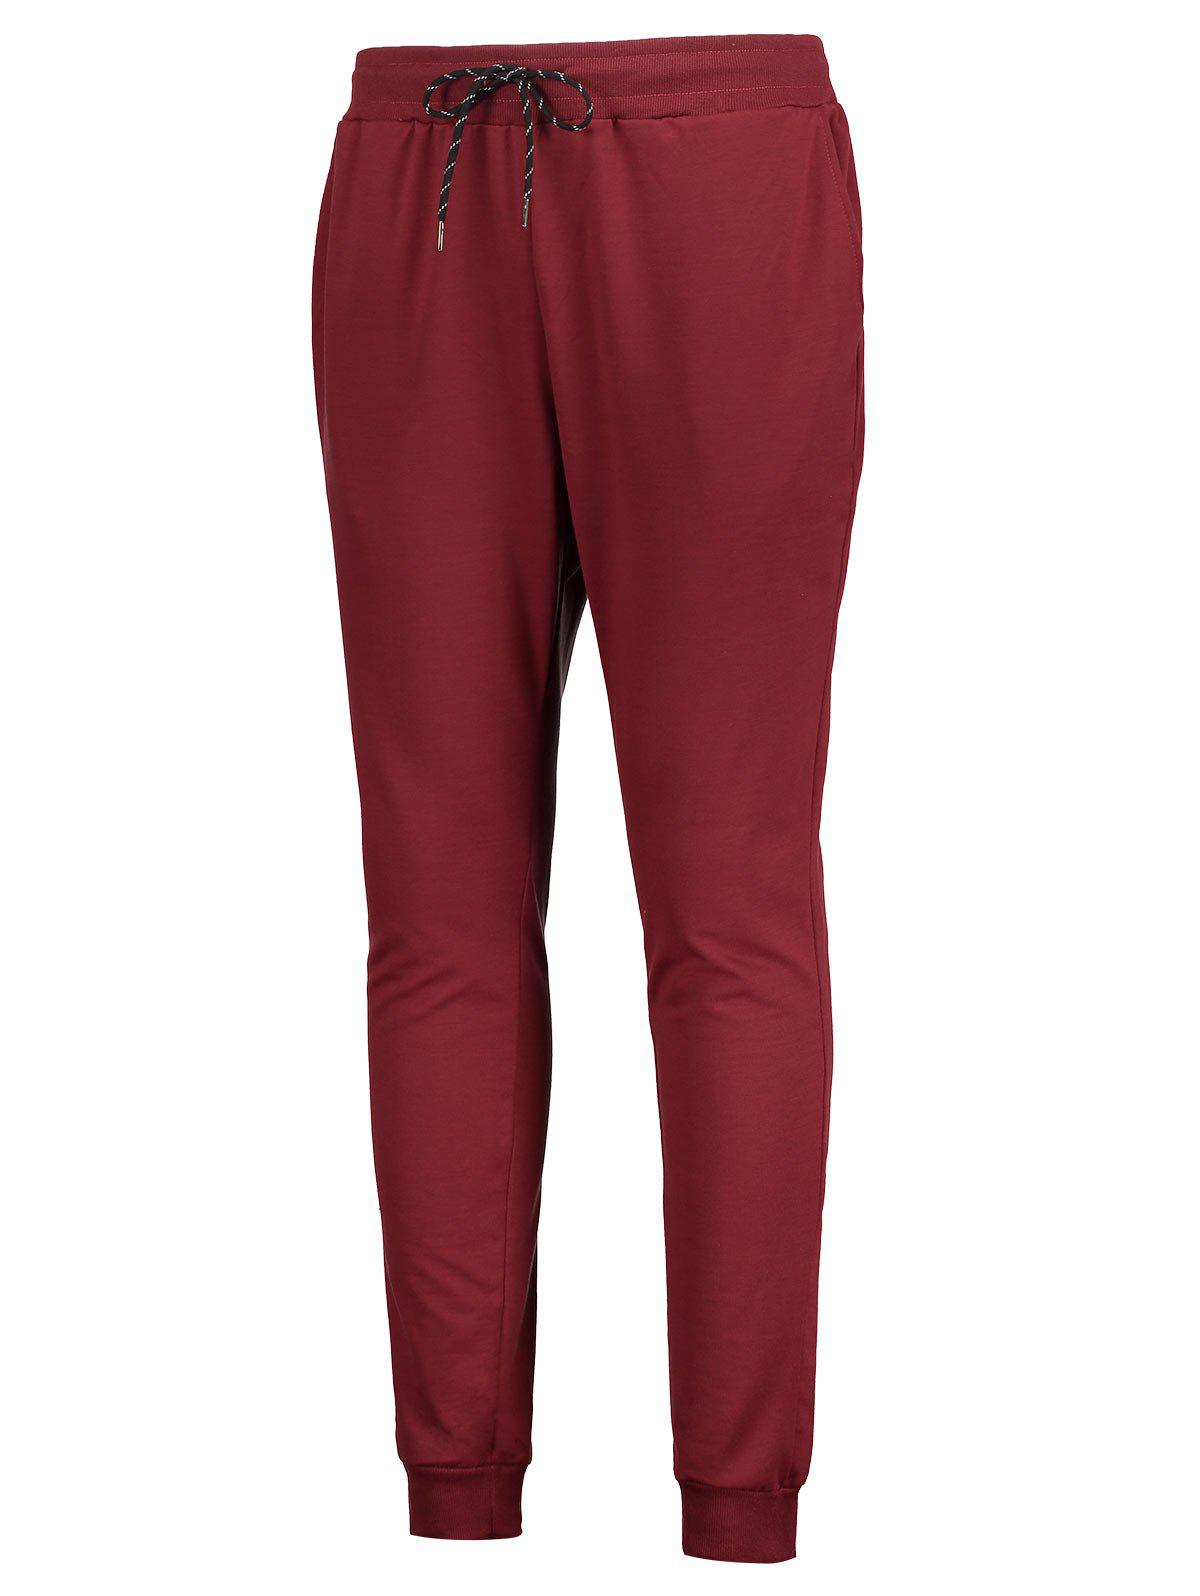 Elastic Drawstring Waist Whole Colored Sports Jogger Pants, Red wine